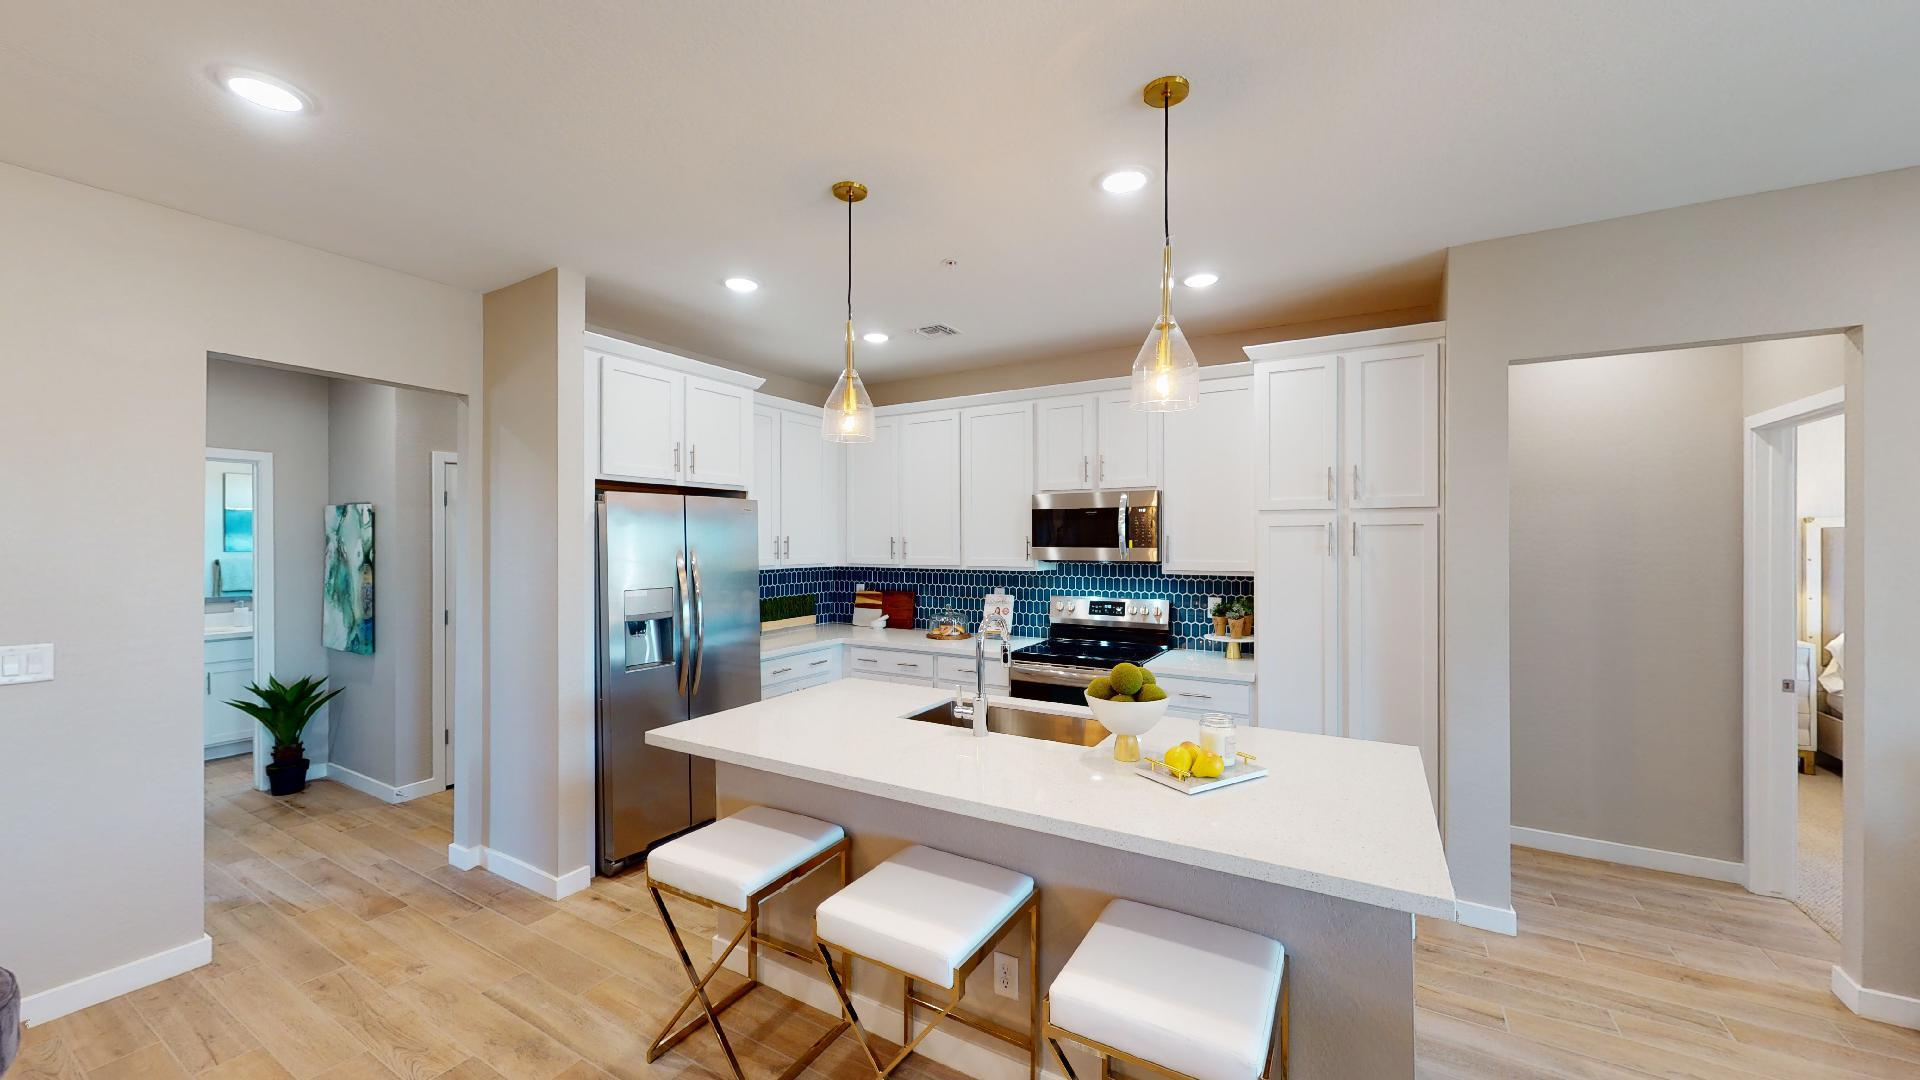 Kitchen featured in the Villa Residence 3 By Ironwood-Waterfall LLC in Phoenix-Mesa, AZ